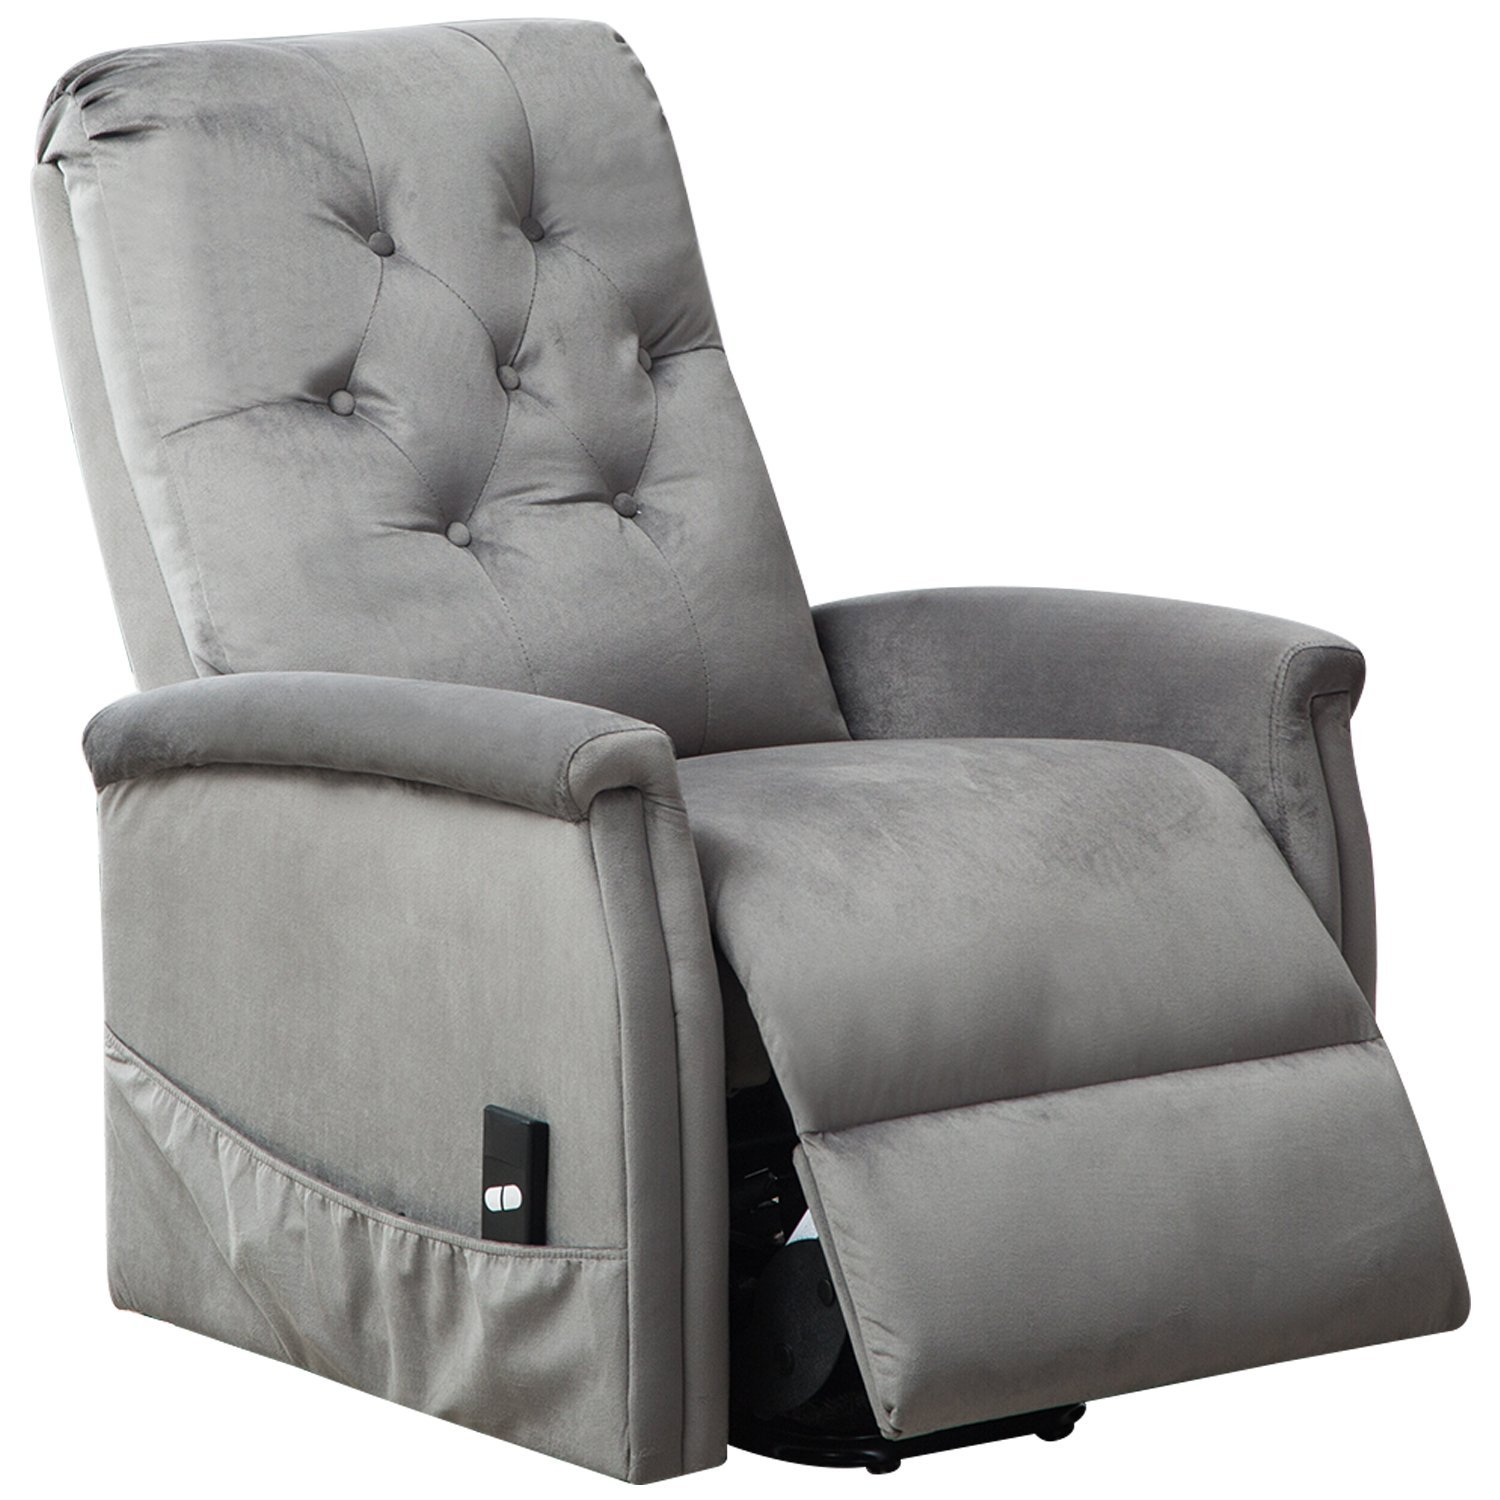 BONZY Power Lift Chair Tufted Recliners Living Room Electric Lifting